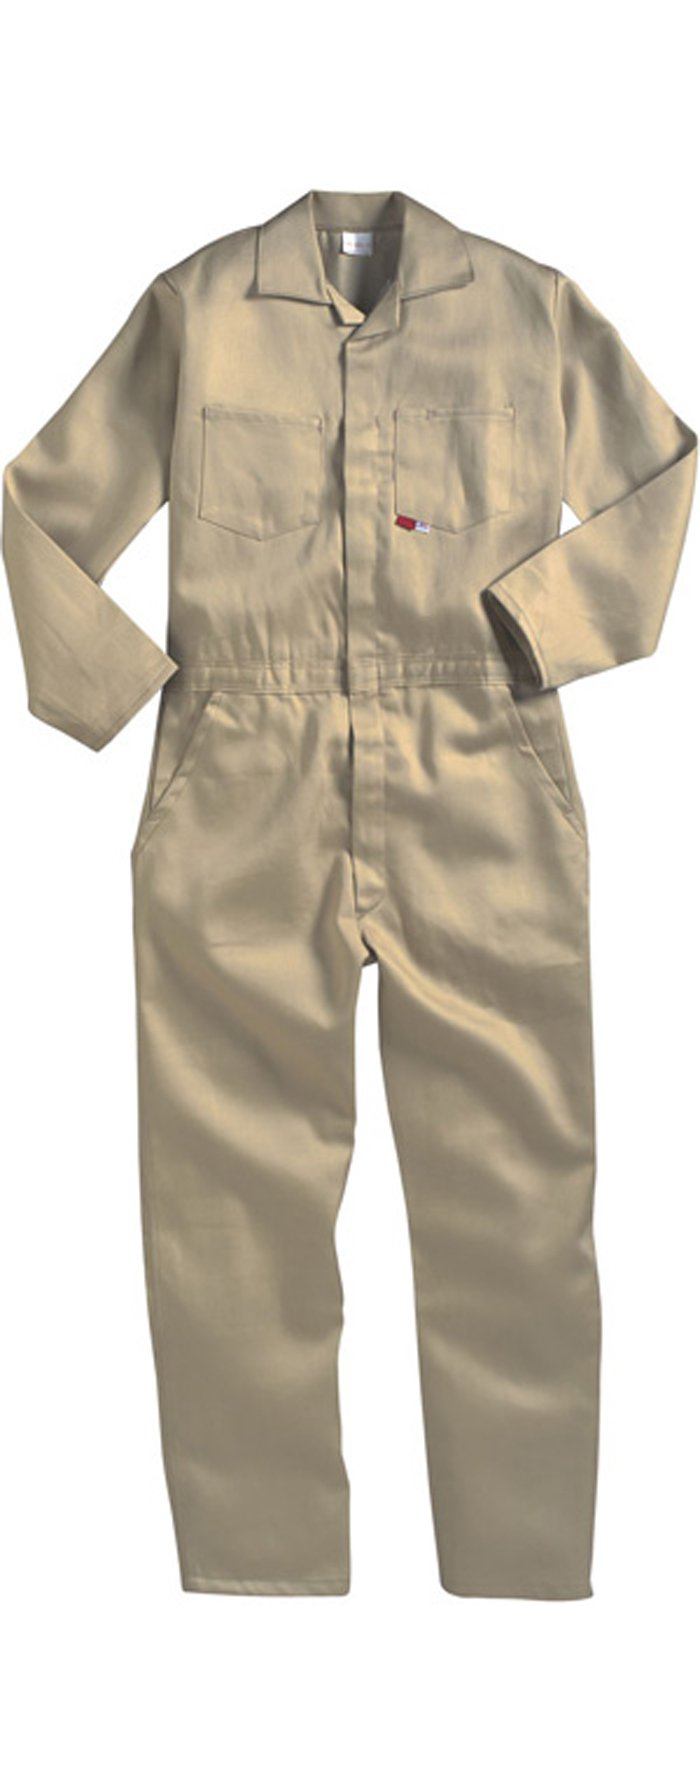 KHAKI - 3X - Saf-Tech Flame Resistant (FR) Work Style Coveralls - 7oz. Westex ULTRA SOFT Fabric - HRC 2 - ATPV=11.5 cal/m2 - MADE IN THE U.S.A. - TALL-Cut Overall